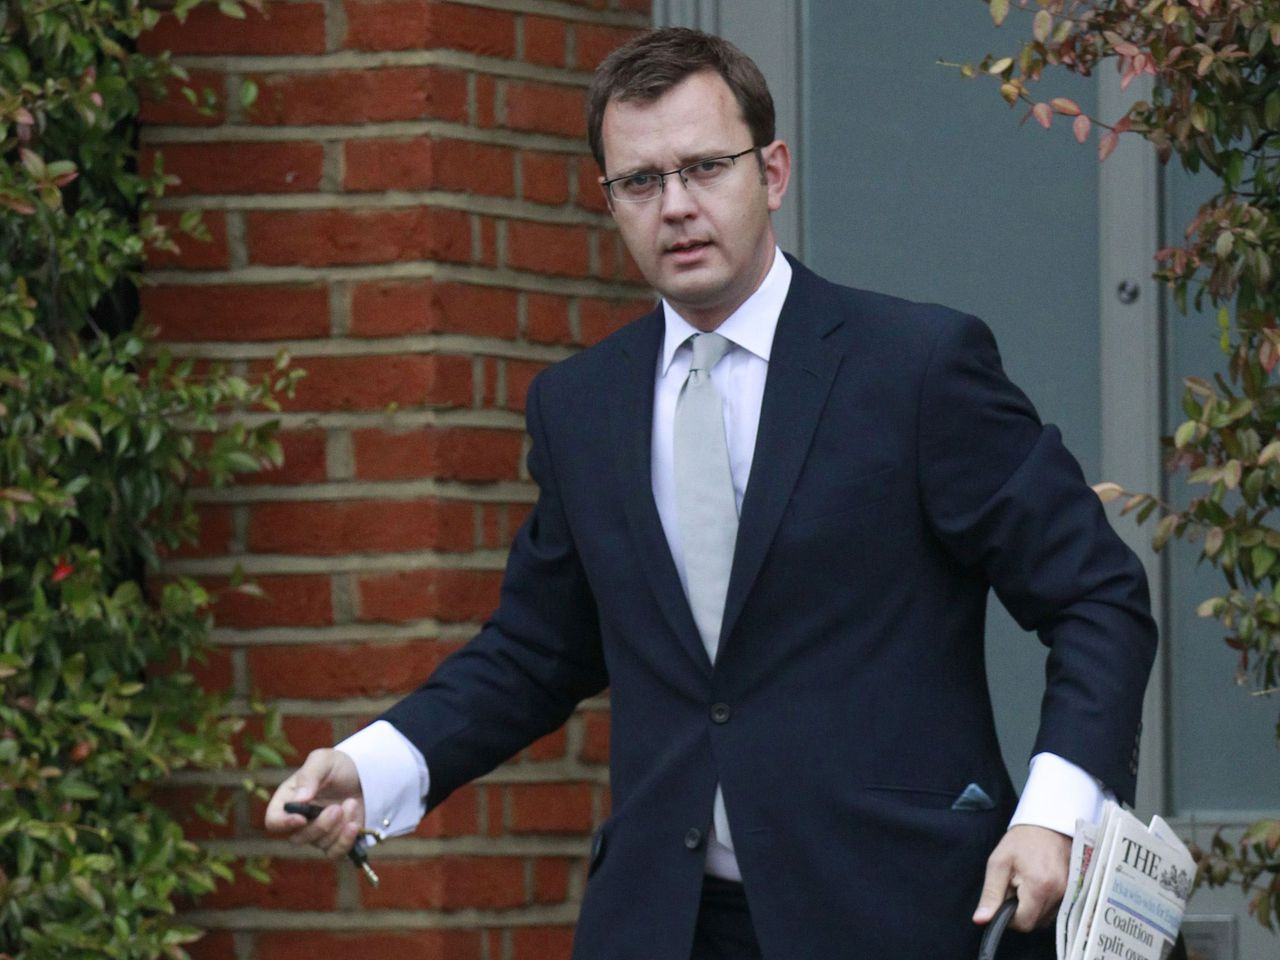 Former News of the World newspaper editor and Prime Minister David Cameron's director of communications, Andy Coulson, is seen leaving his home in Dulwich, southeast London in this September 8, 2010 file photograph. Coulson resigned as Cameron's director of Communications, Downing Street said, on January 21, 2011. REUTERS/Luke MacGregor/Files (BRITAIN - Tags: POLITICS SOCIETY)